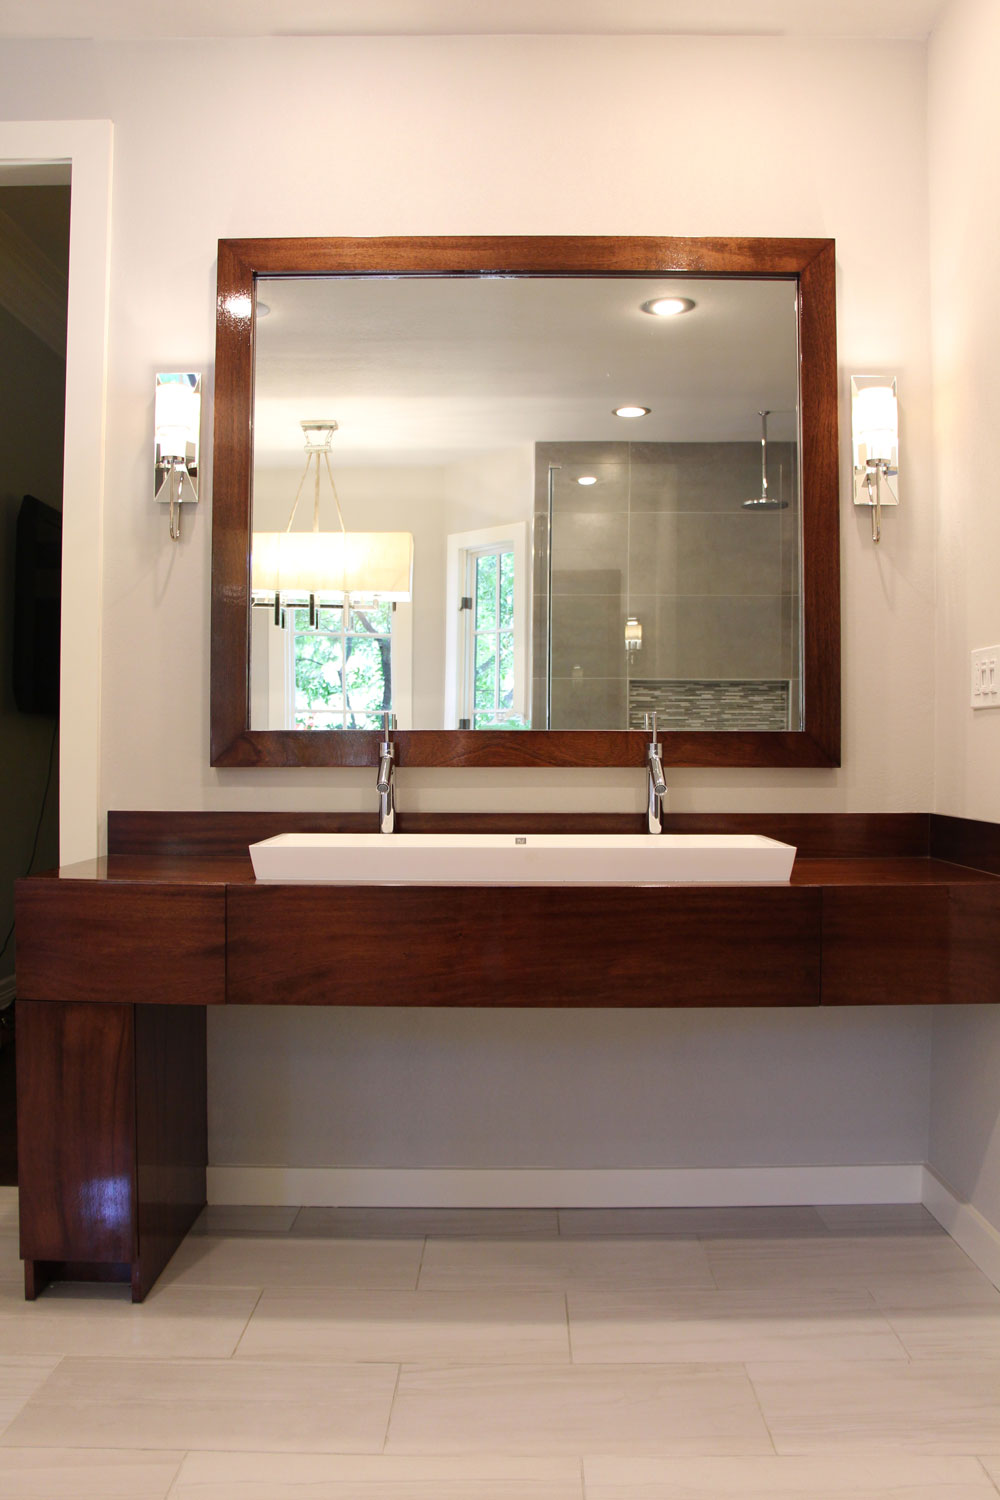 Liz-Light-Interiors-Bathroom-12.jpg